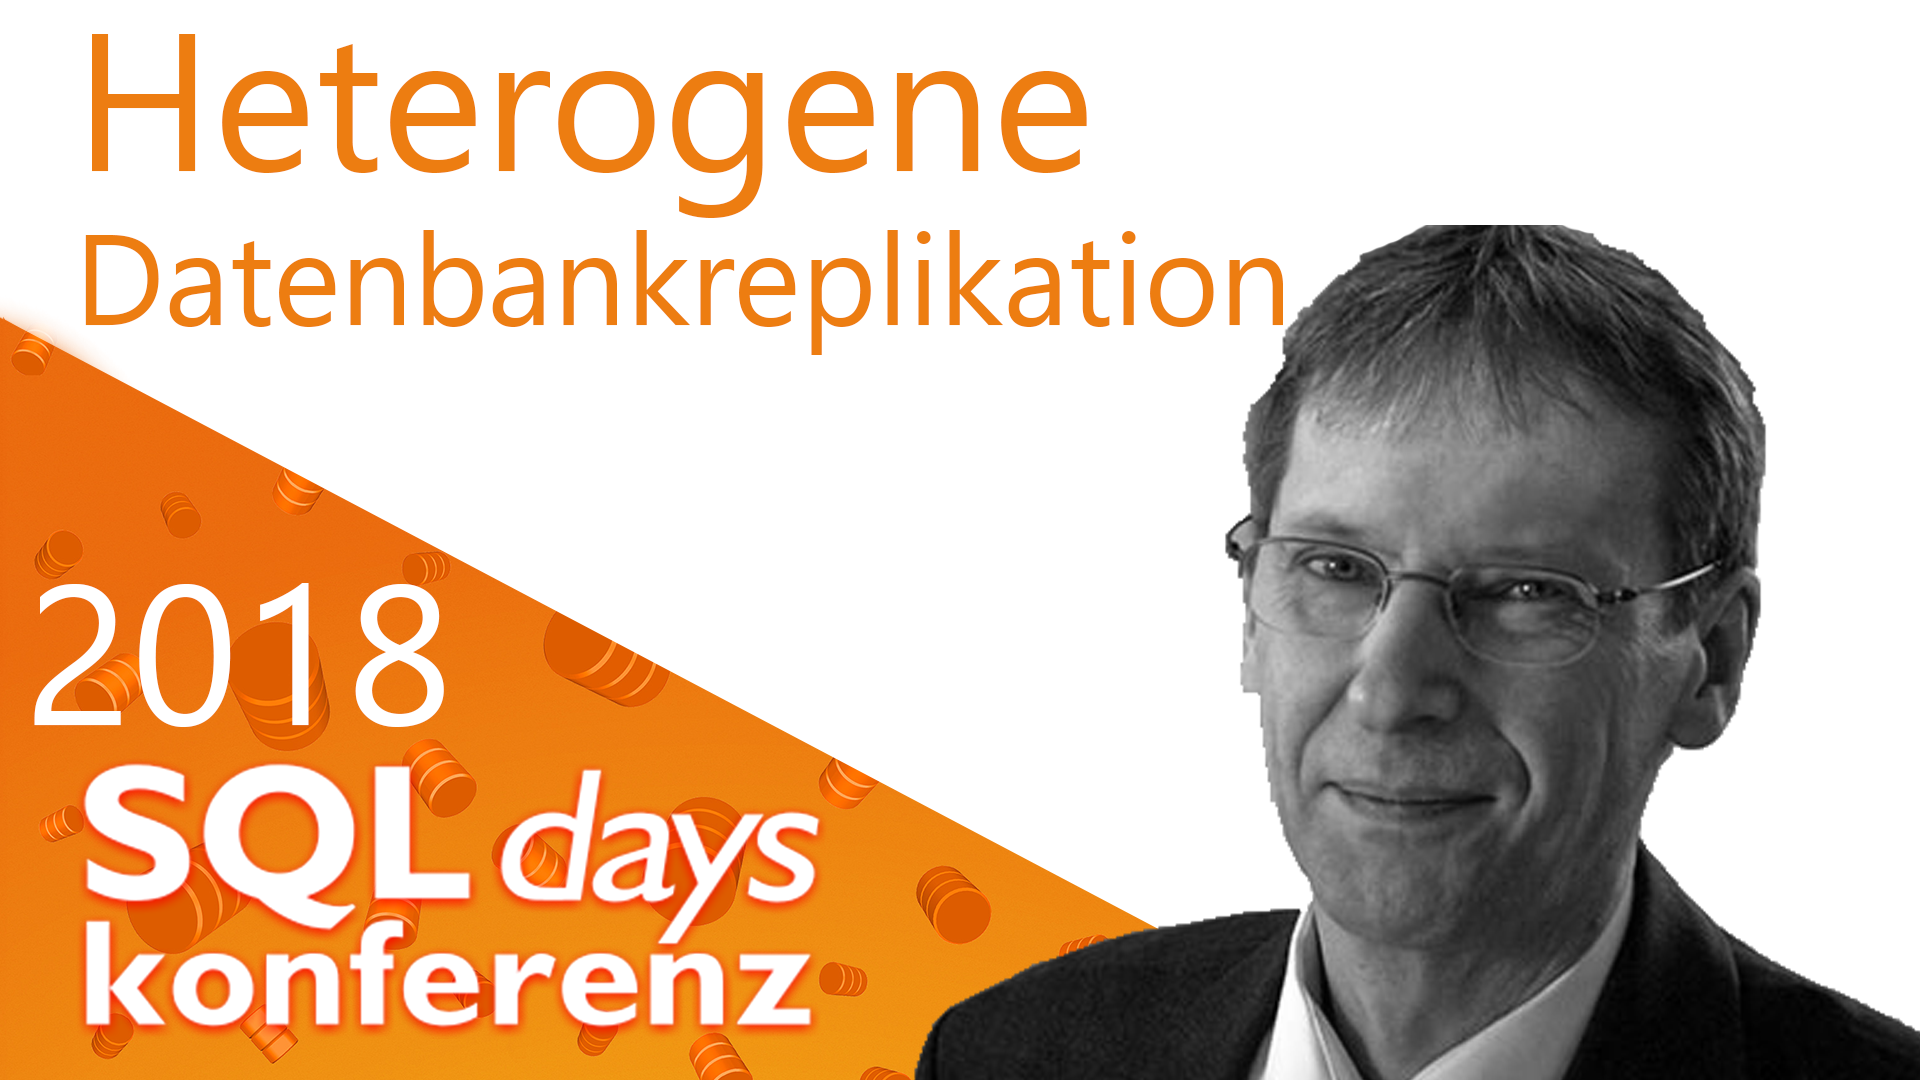 2018/SQLDays/HeterogeneDatenbankreplikationMicrosoftSQLServer